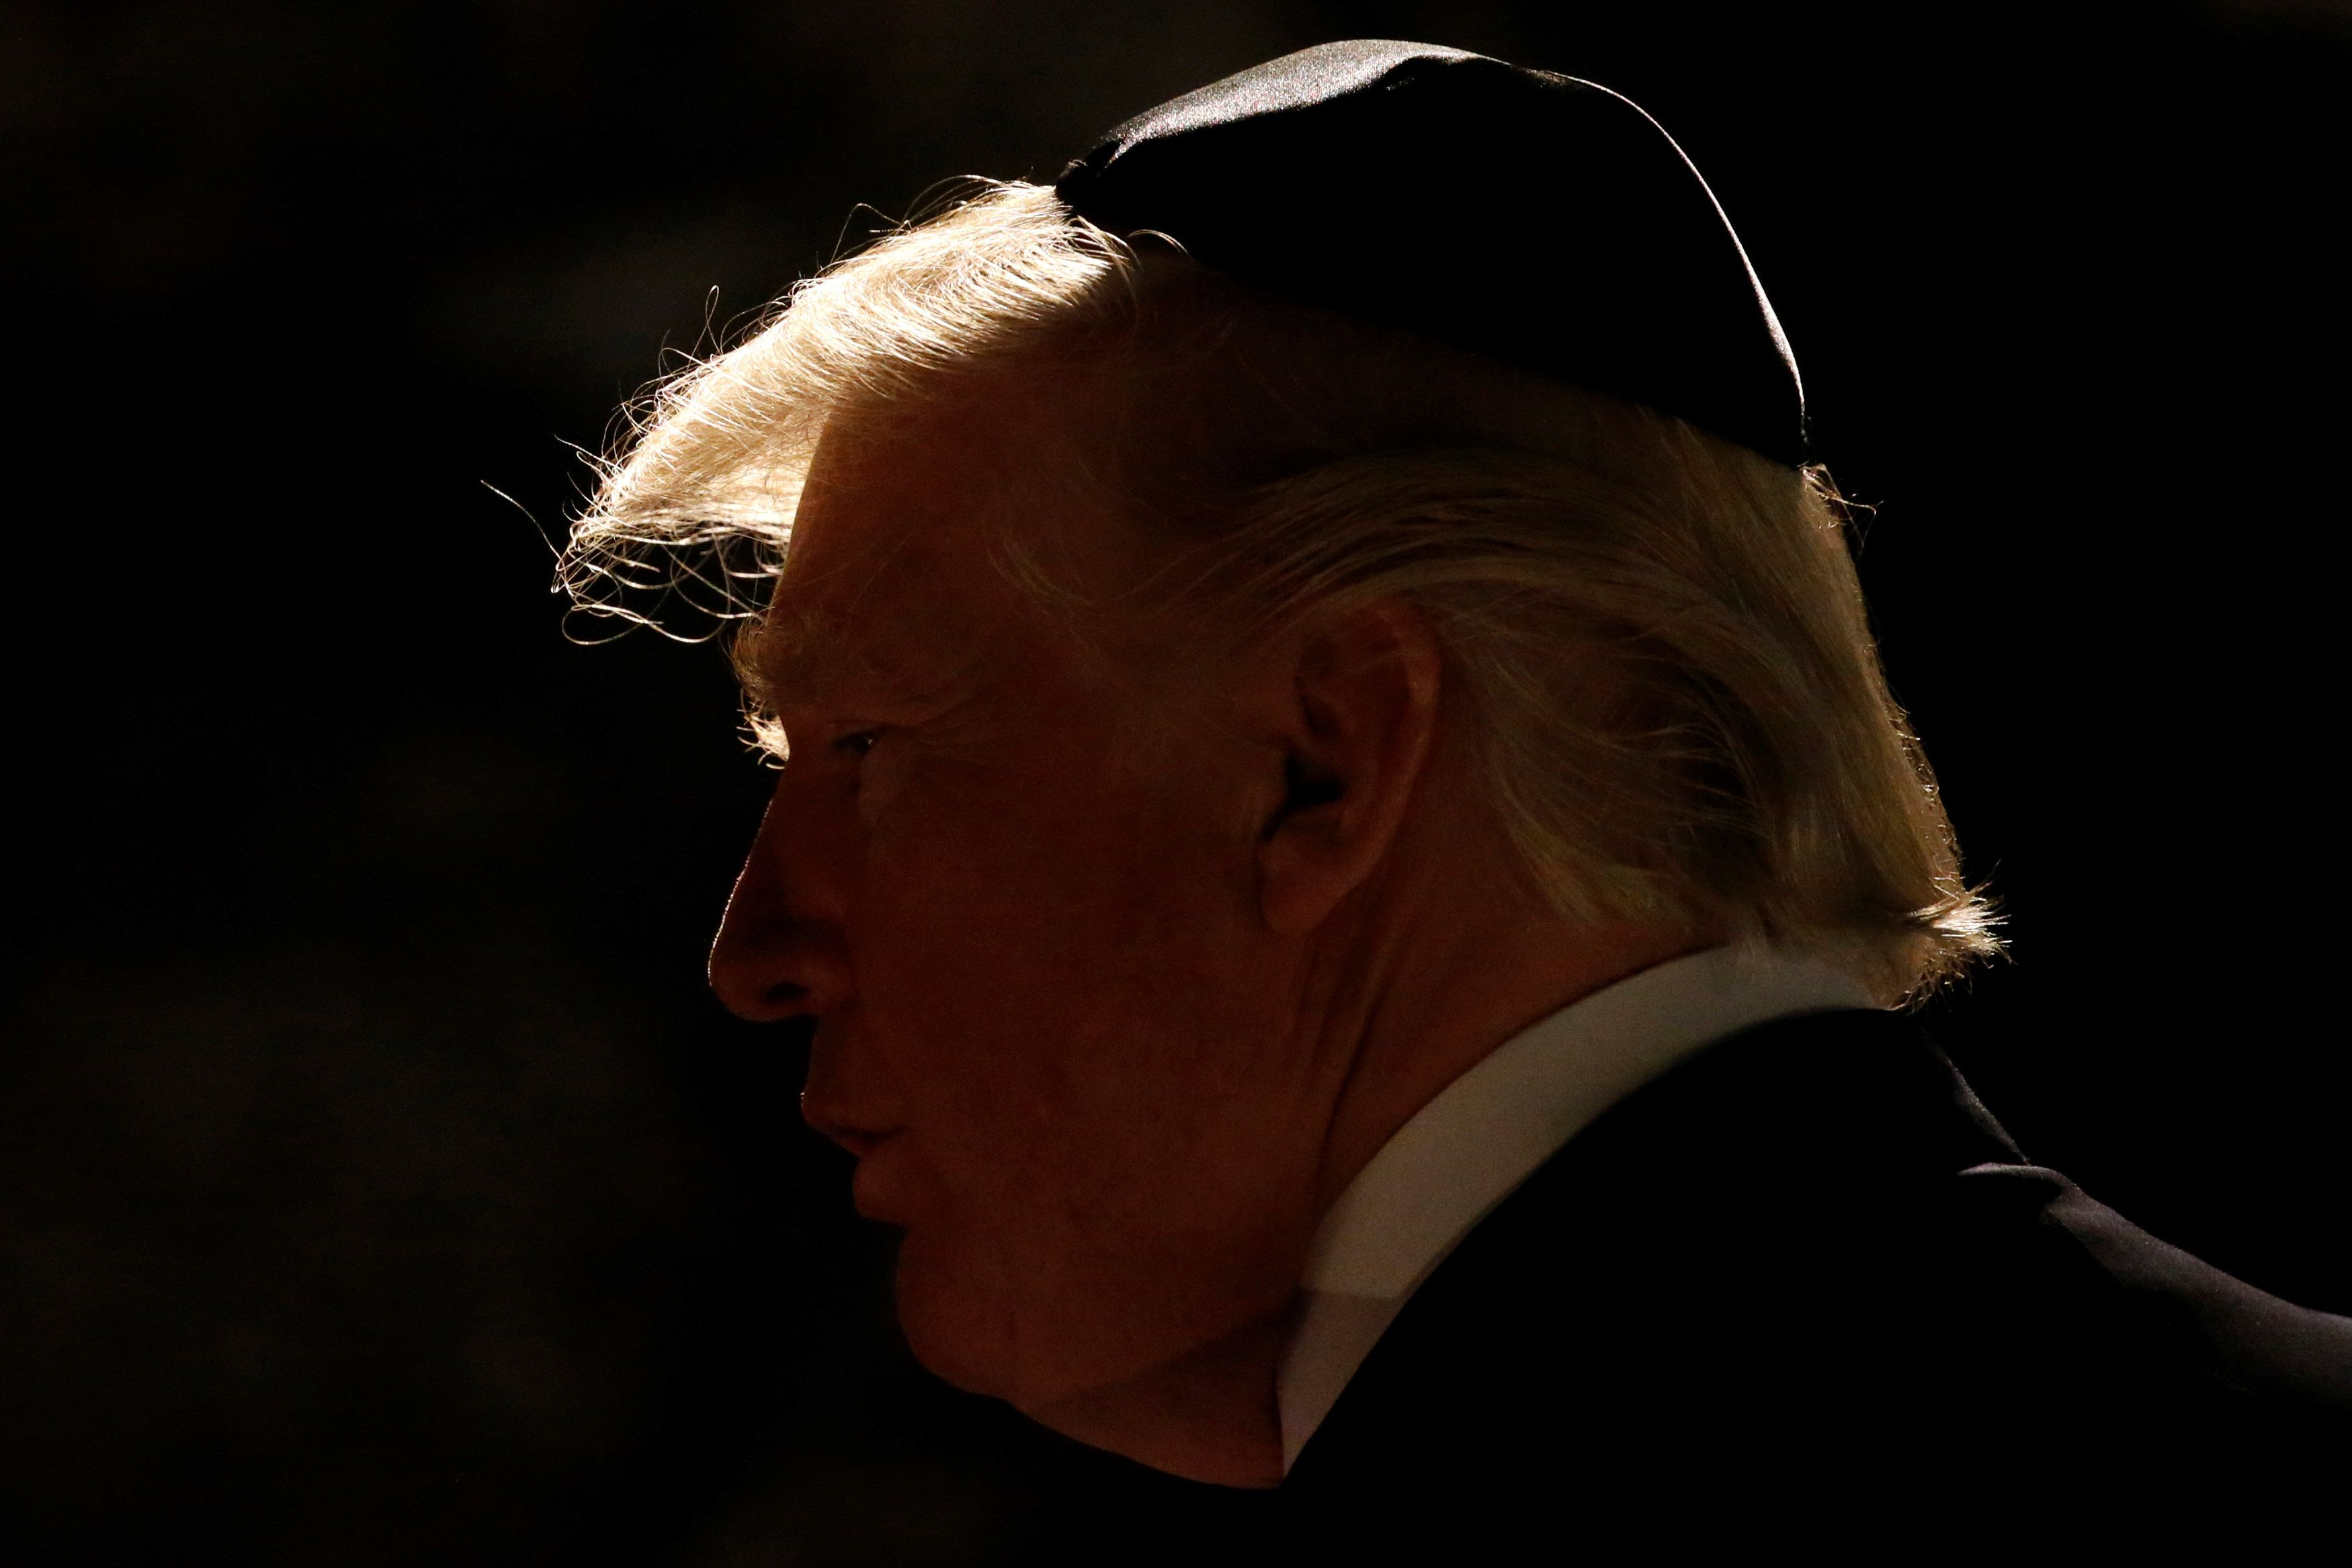 U.S. President Donald Trump arrives to participate in a wreath-laying at the Yad Vashem holocaust memorial in Jerusalem May 23, 2017.  REUTERS/Jonathan Ernst     TPX IMAGES OF THE DAY